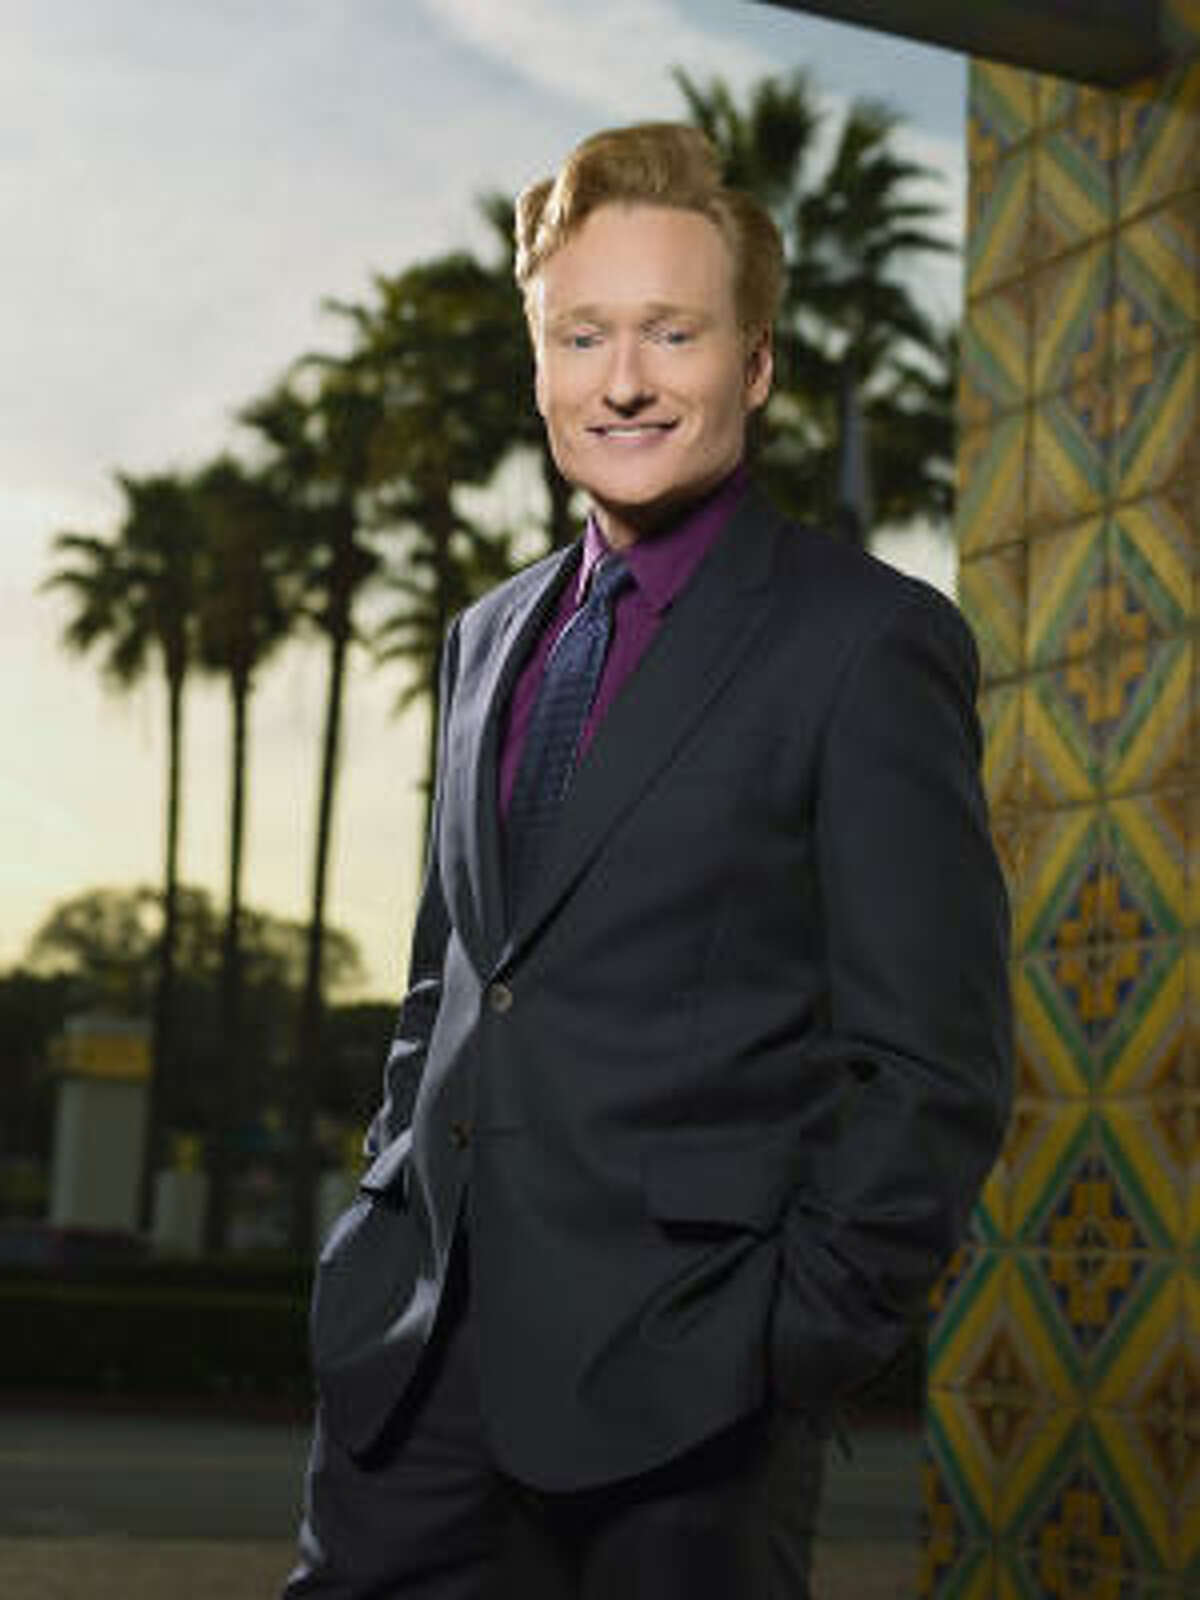 Conan O'Brien, new host of The Tonight Show